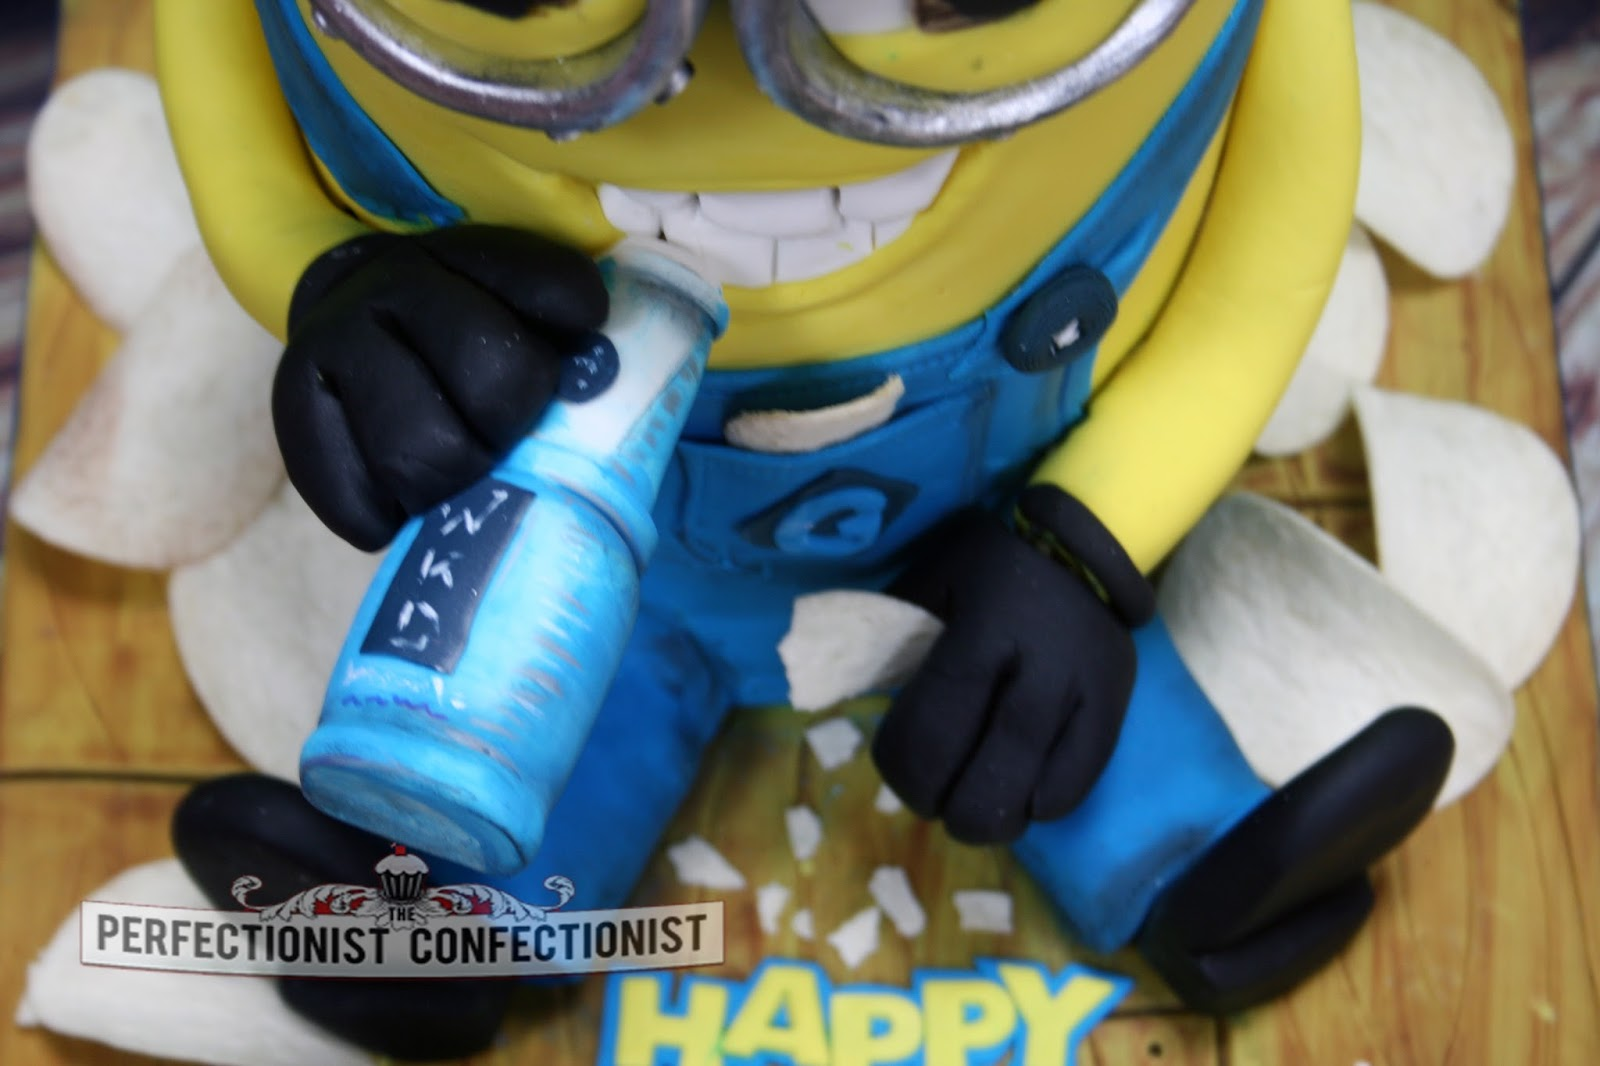 The Perfectionist Confectionist Laura Minion Birthday Cake